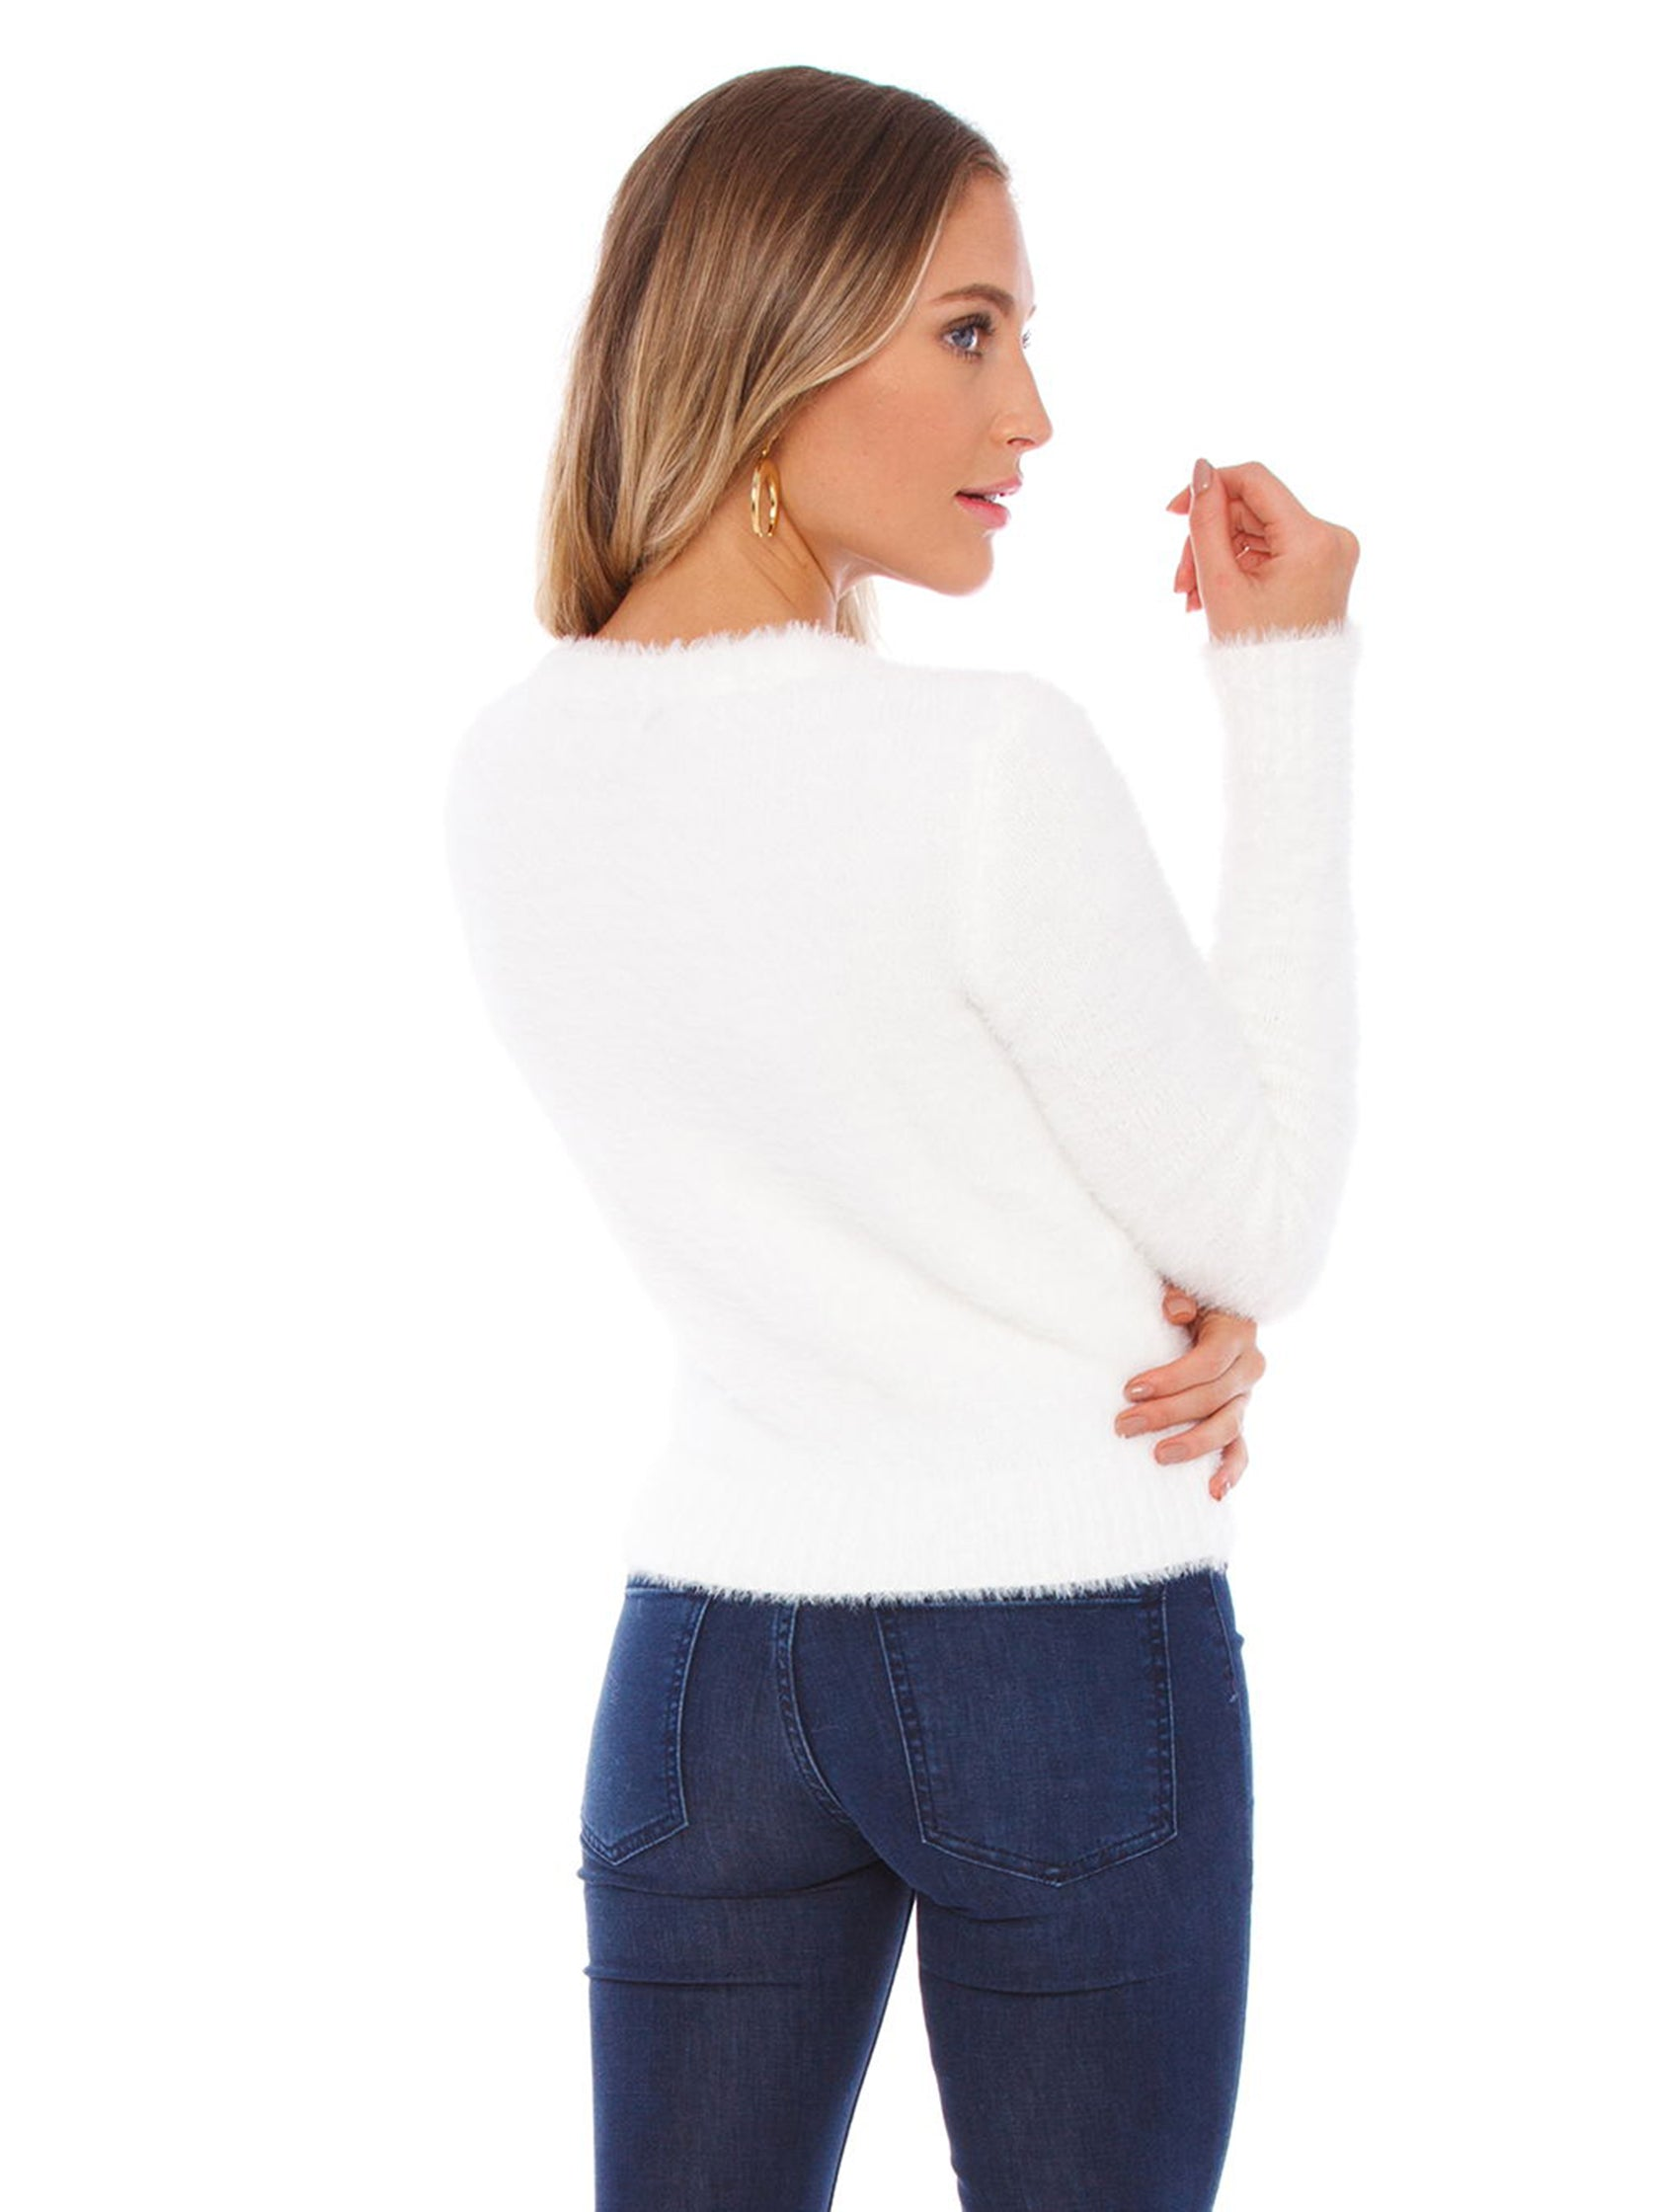 Women outfit in a sweater rental from FASHIONPASS called White As Snow Sweater